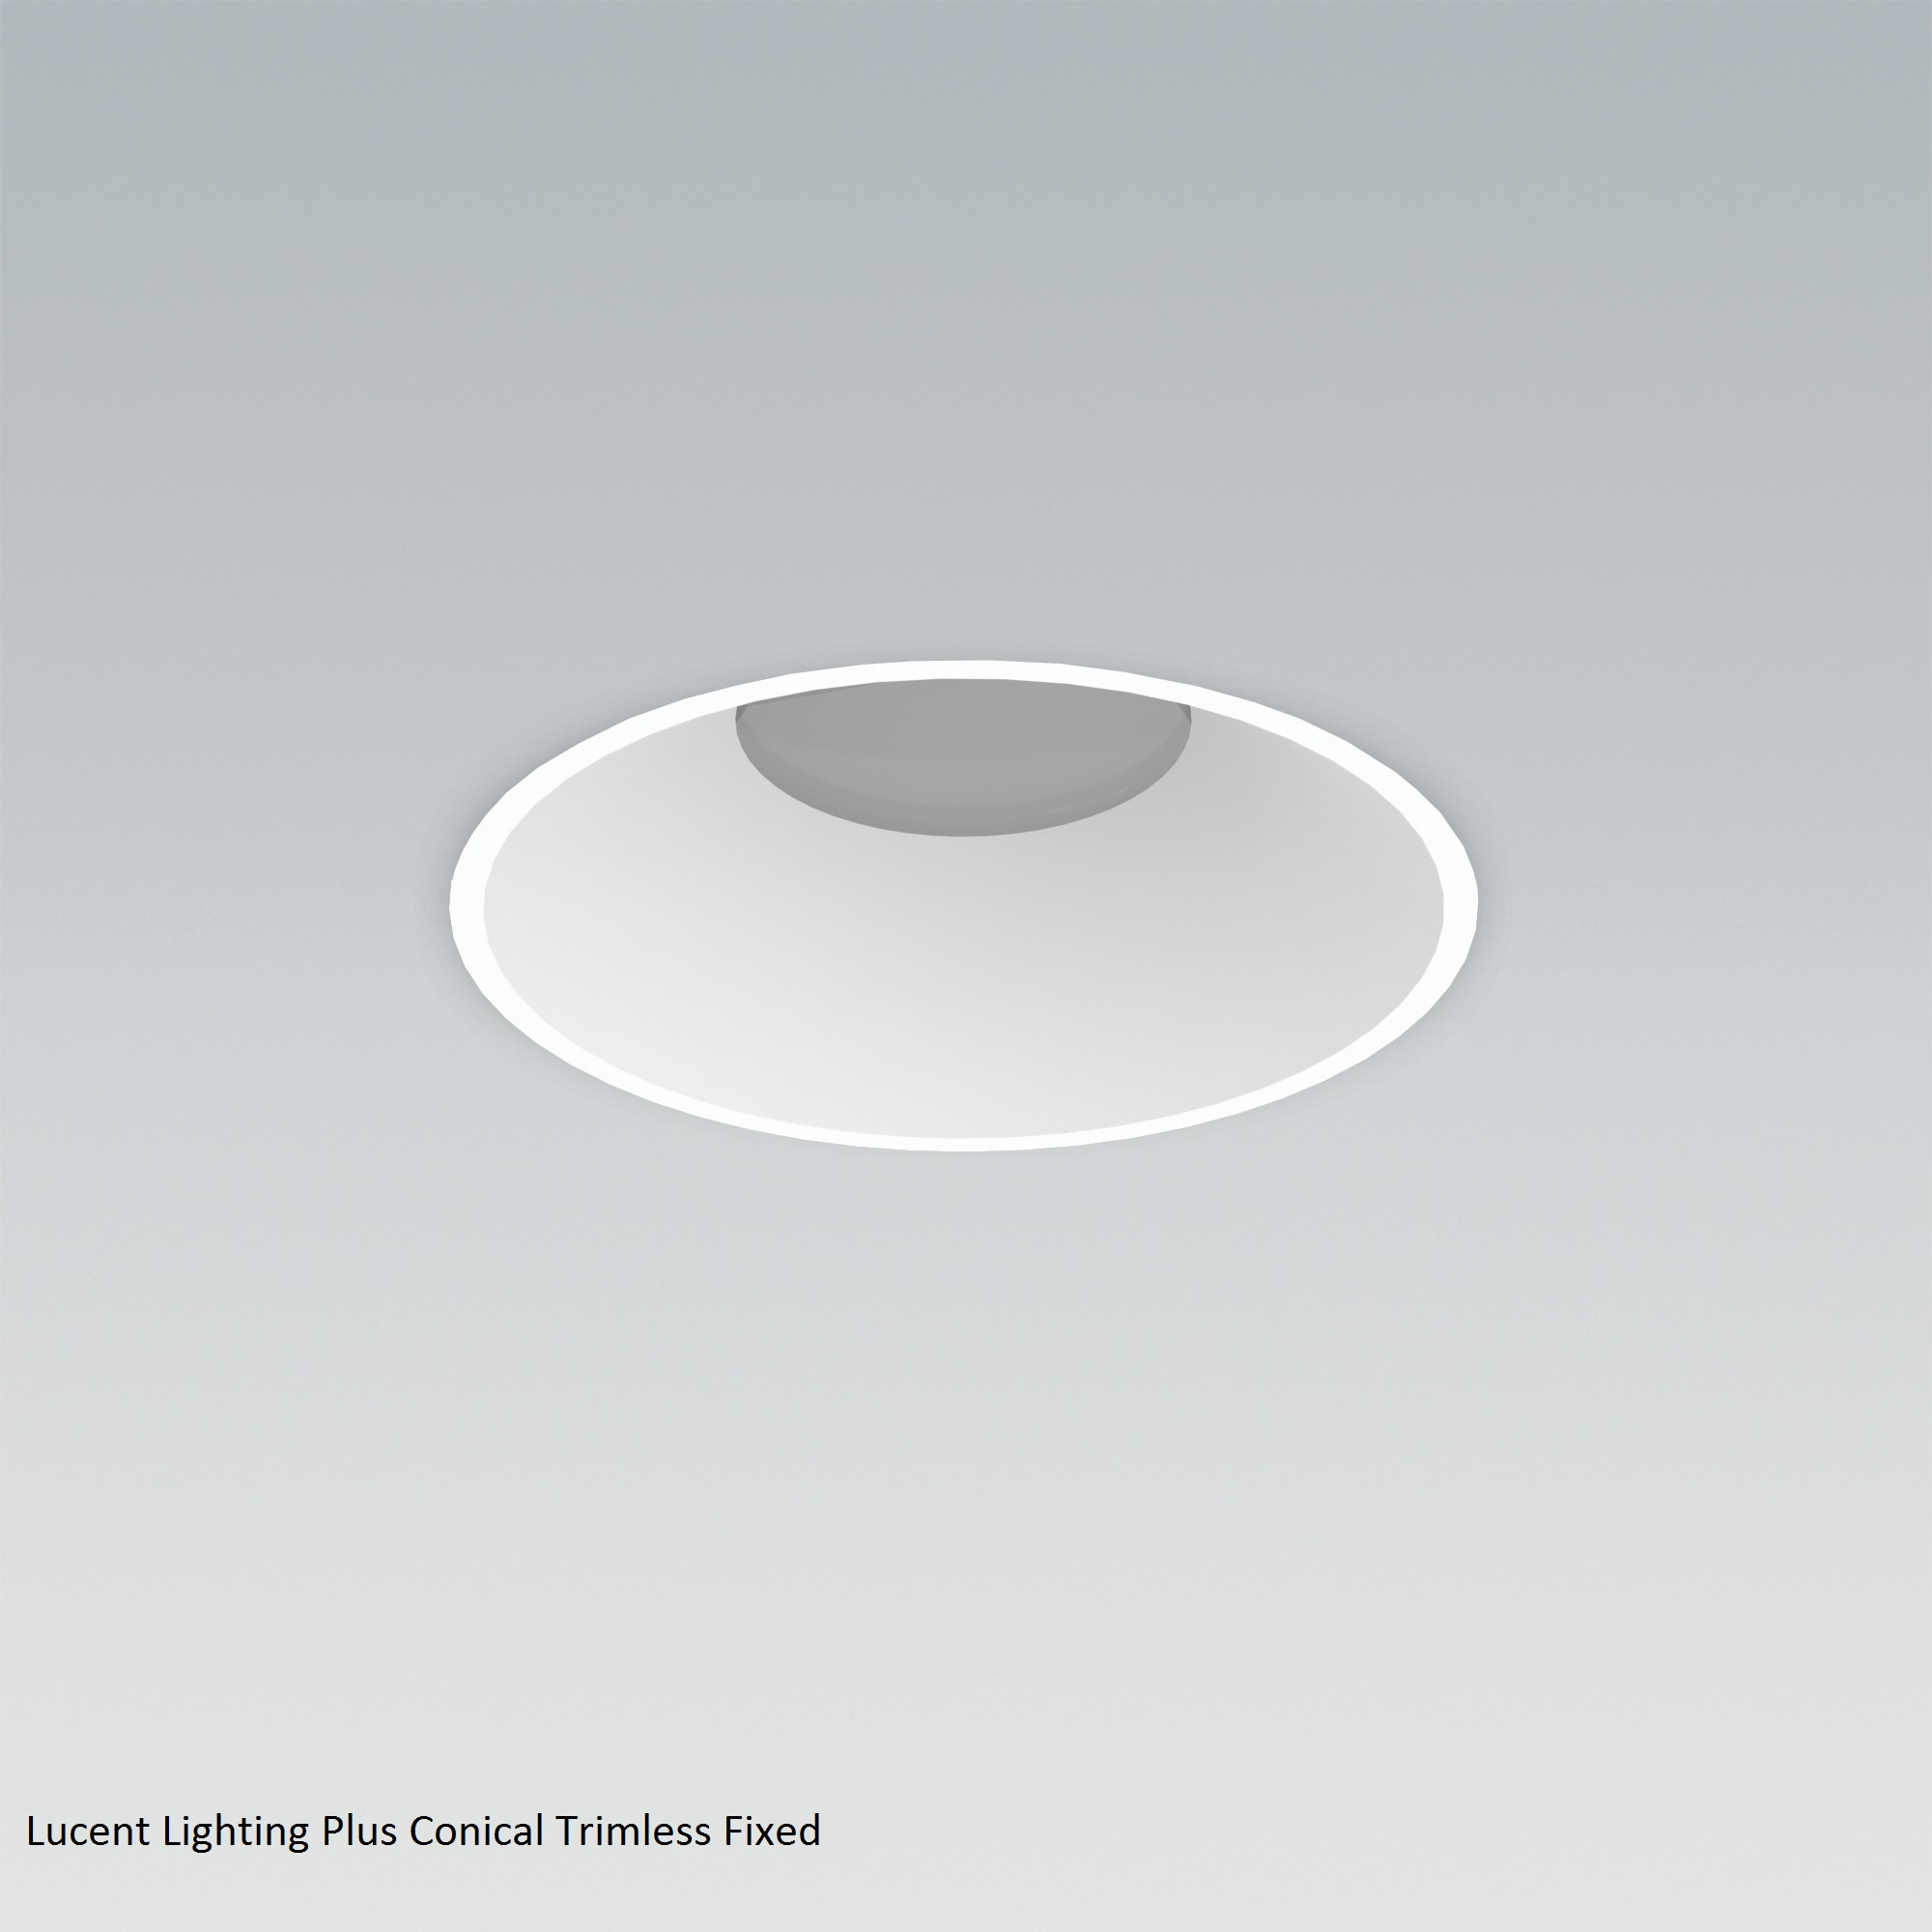 lucent-lighting-plus-conical-trimless-fixed